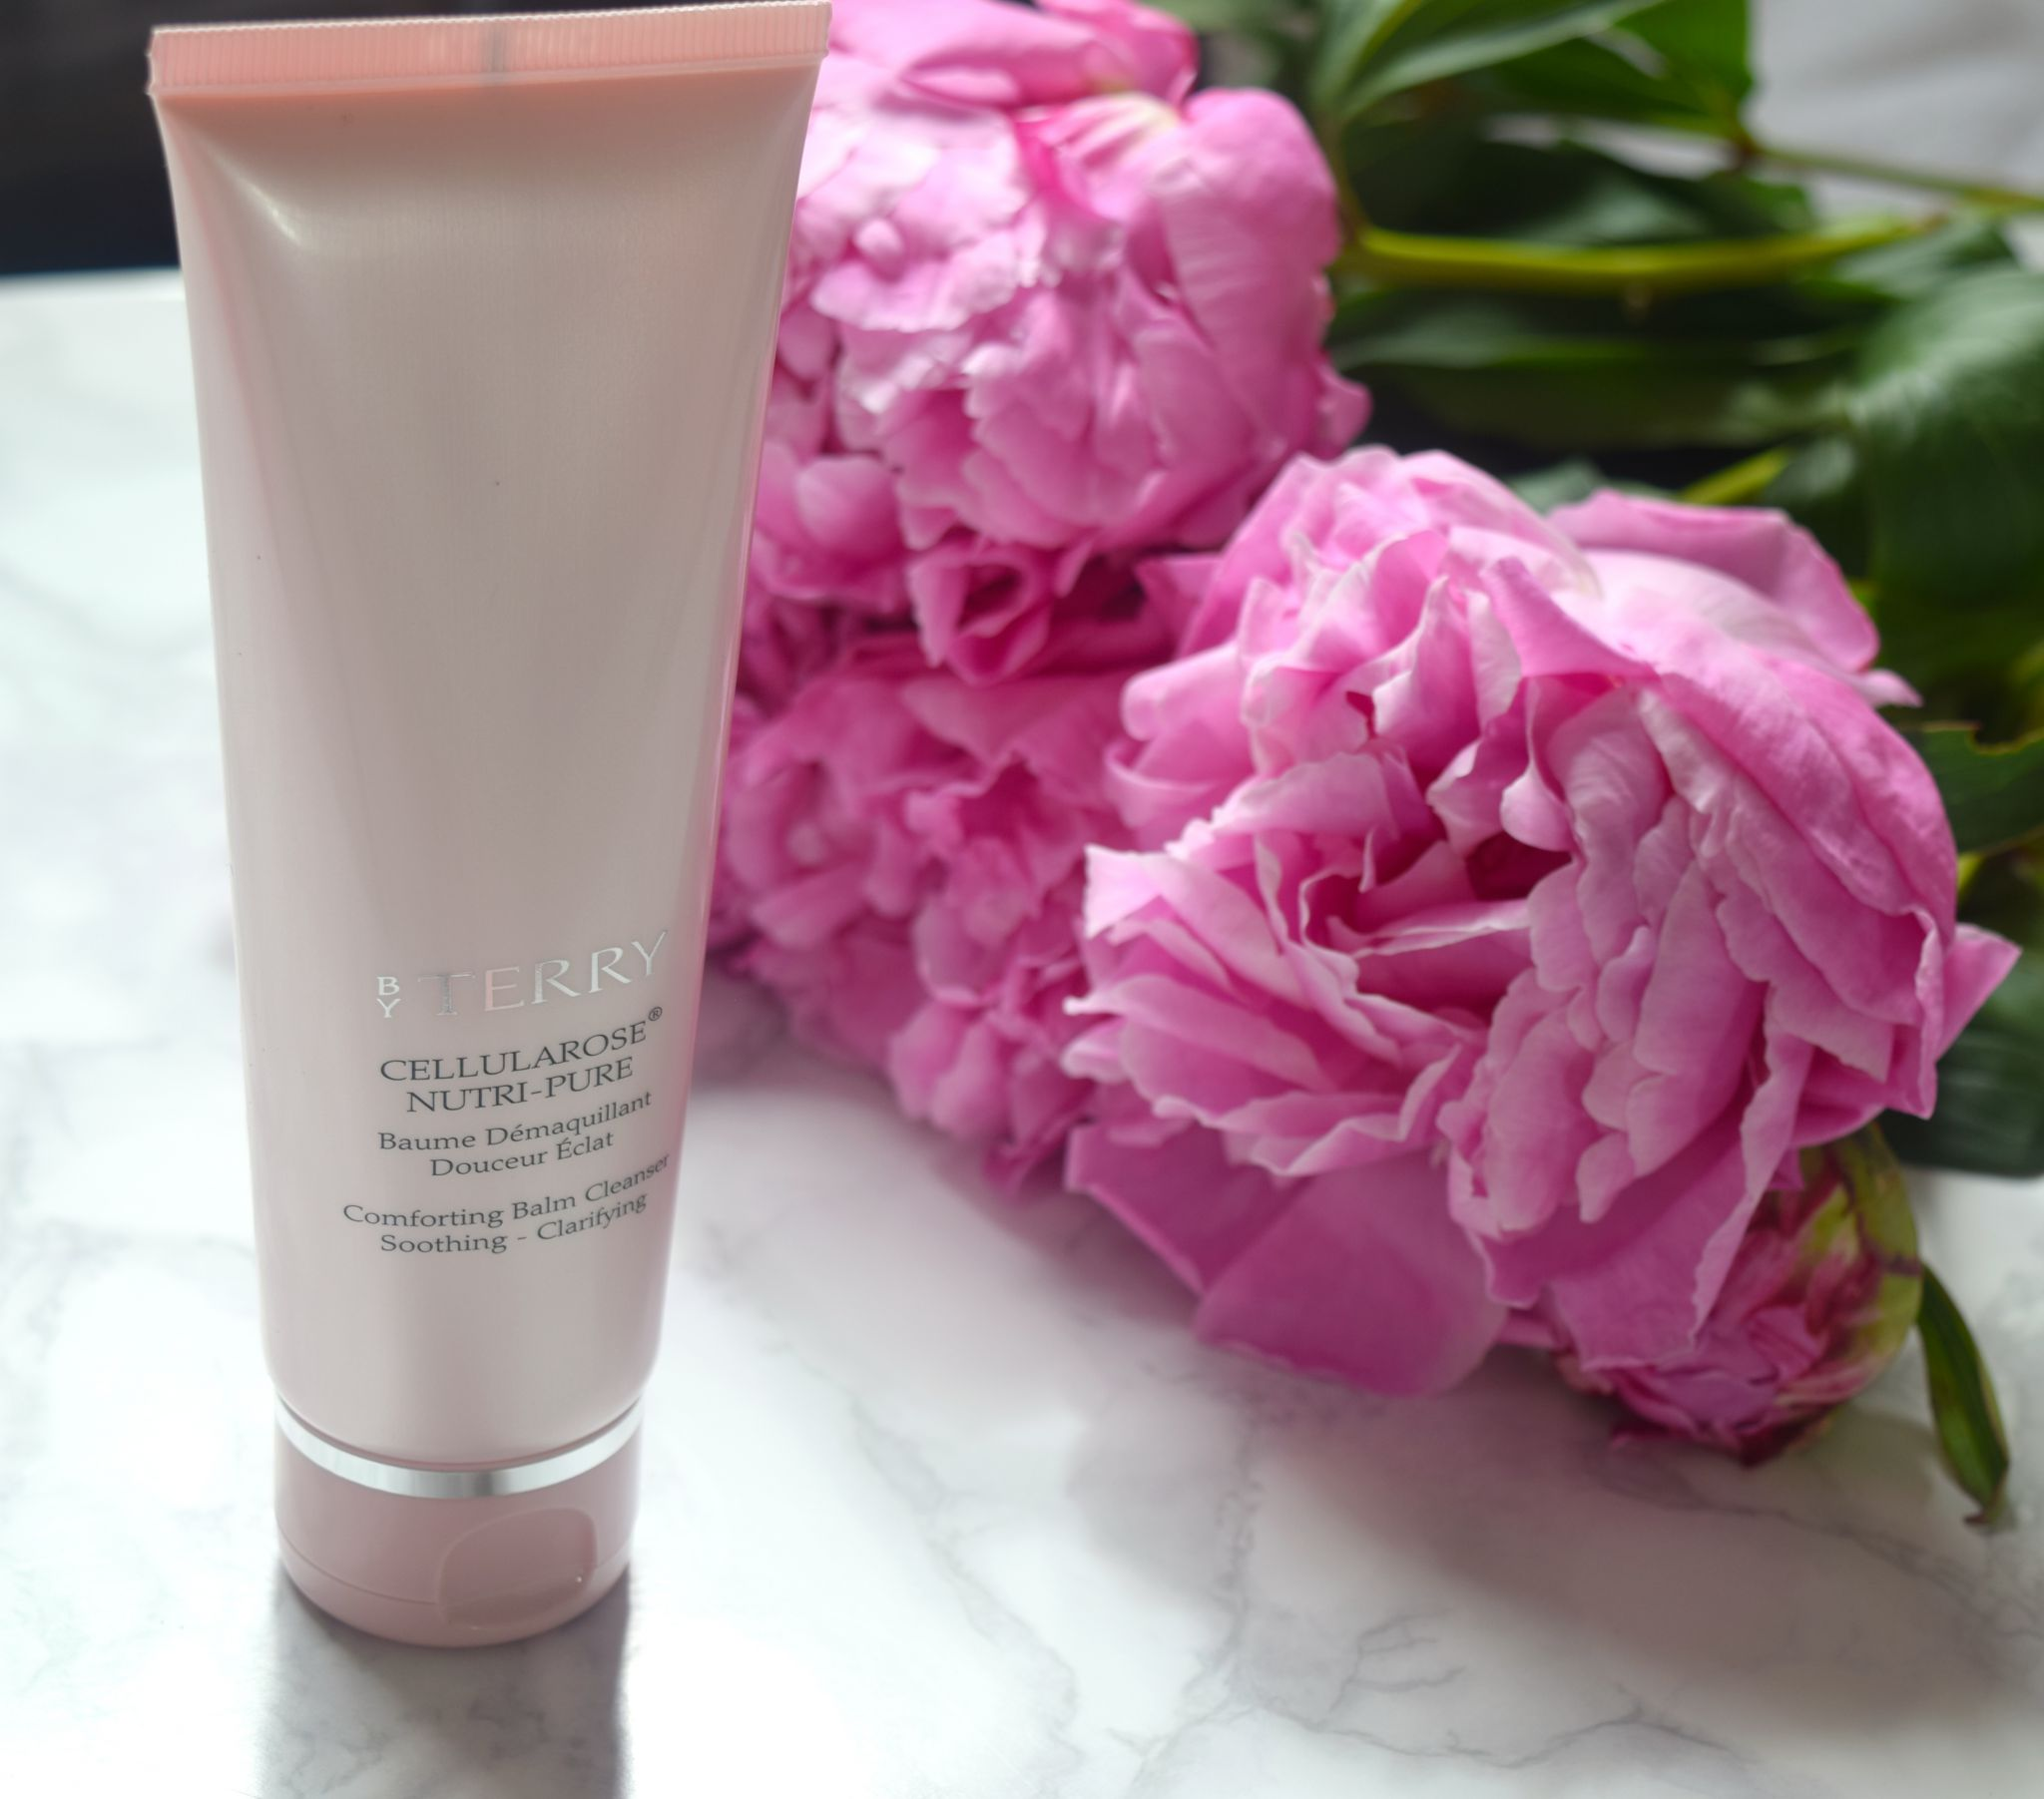 ByTerry Cellularose Nutri-Pure Comforting Balm Cleanser